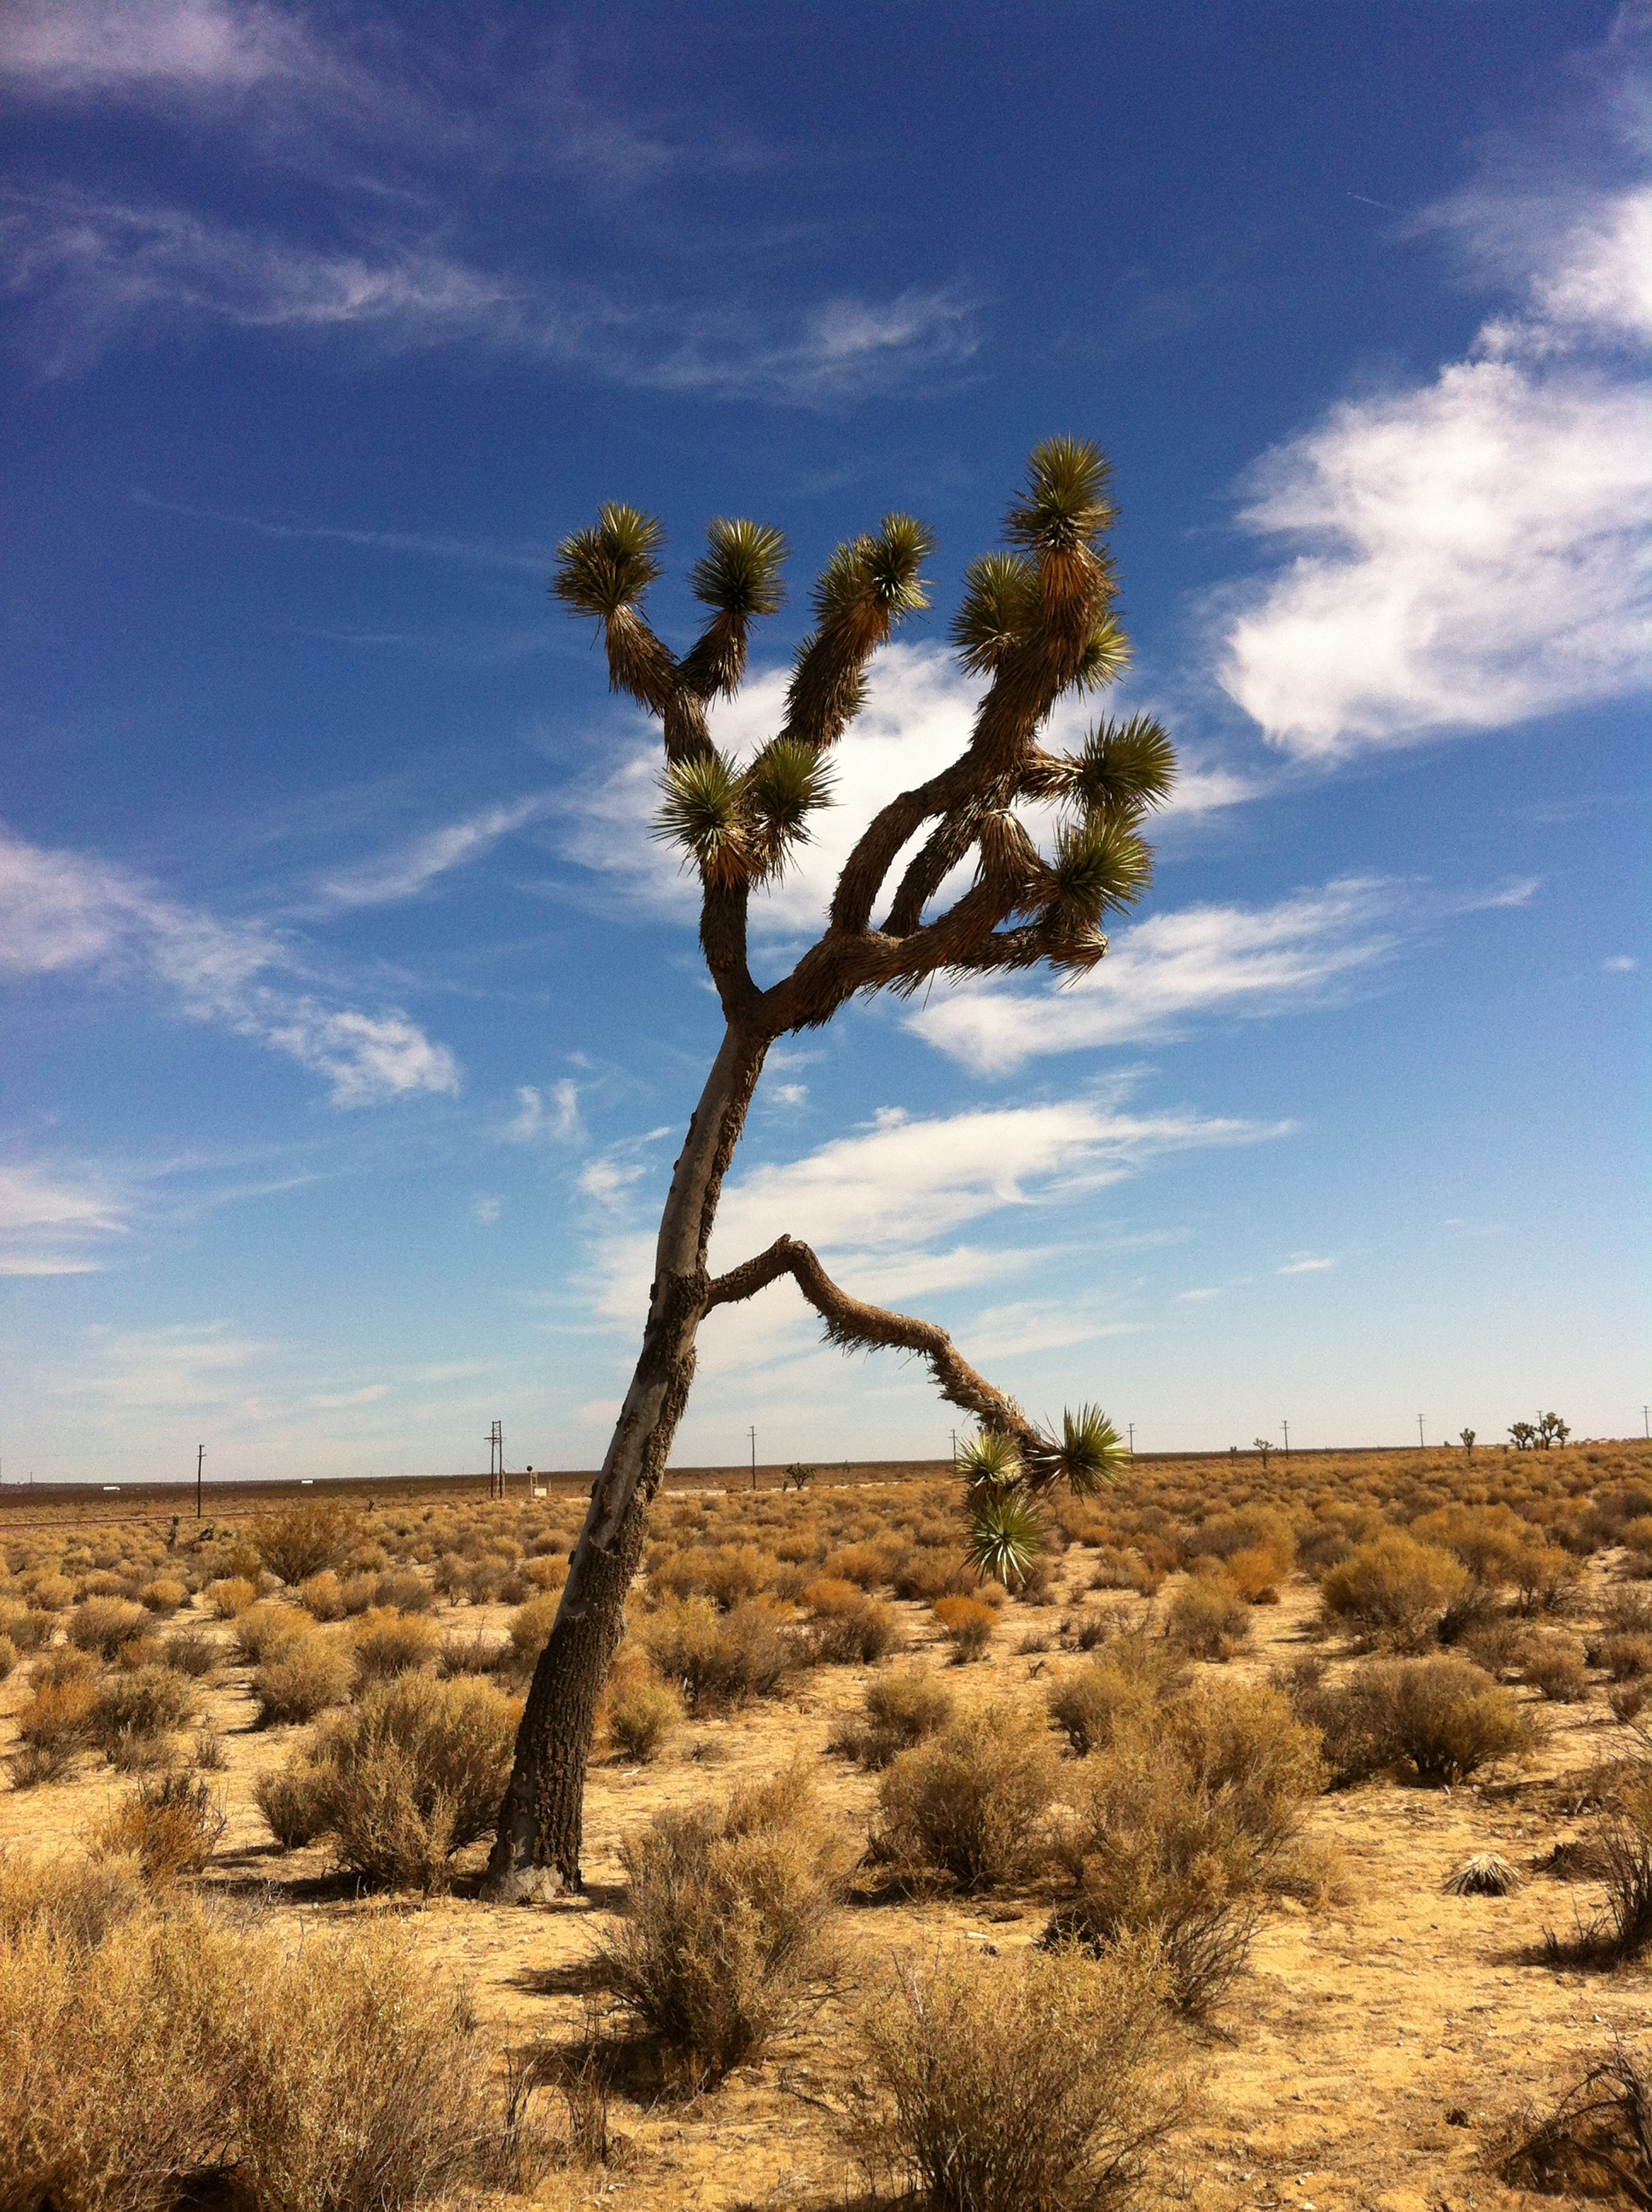 UltimateGraveyard Mojave Desert Filming & Photography Location - Joshua Trees & Train Tracks